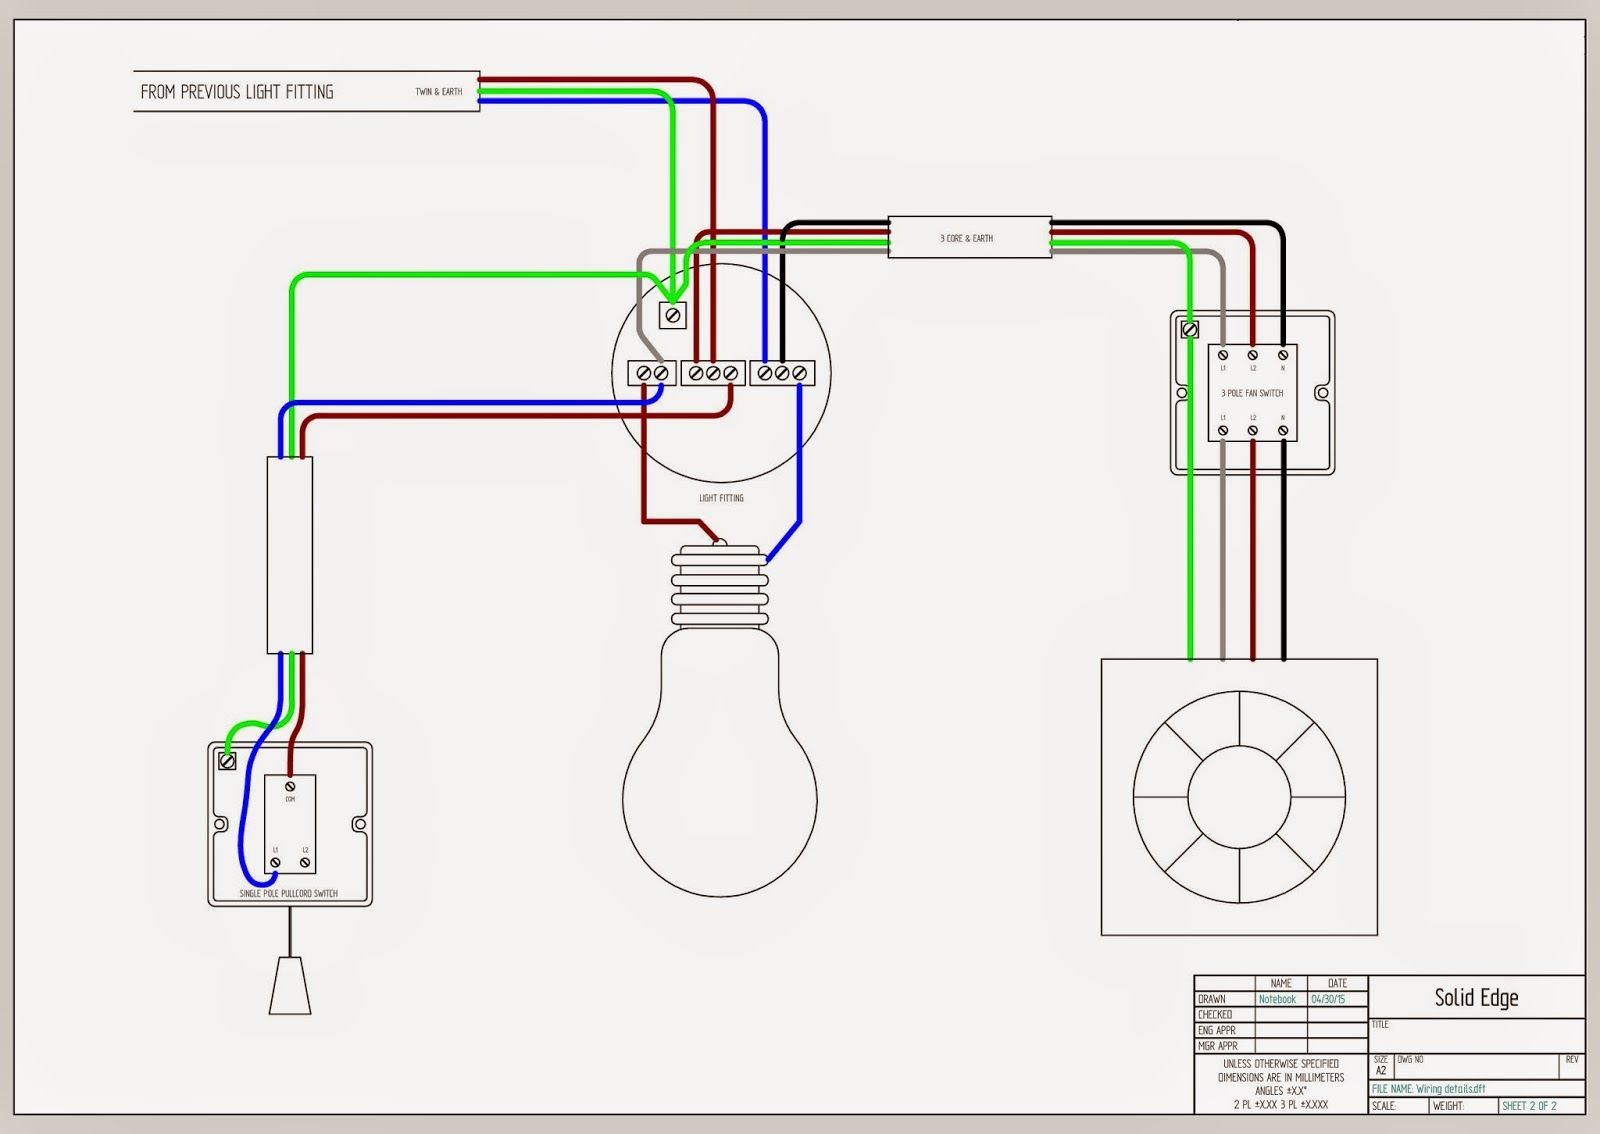 motor wiring diagram likewise bathroom fan light switch wiring fans switch wiring diagram likewise pull chain light wiring diagram [ 1600 x 1134 Pixel ]